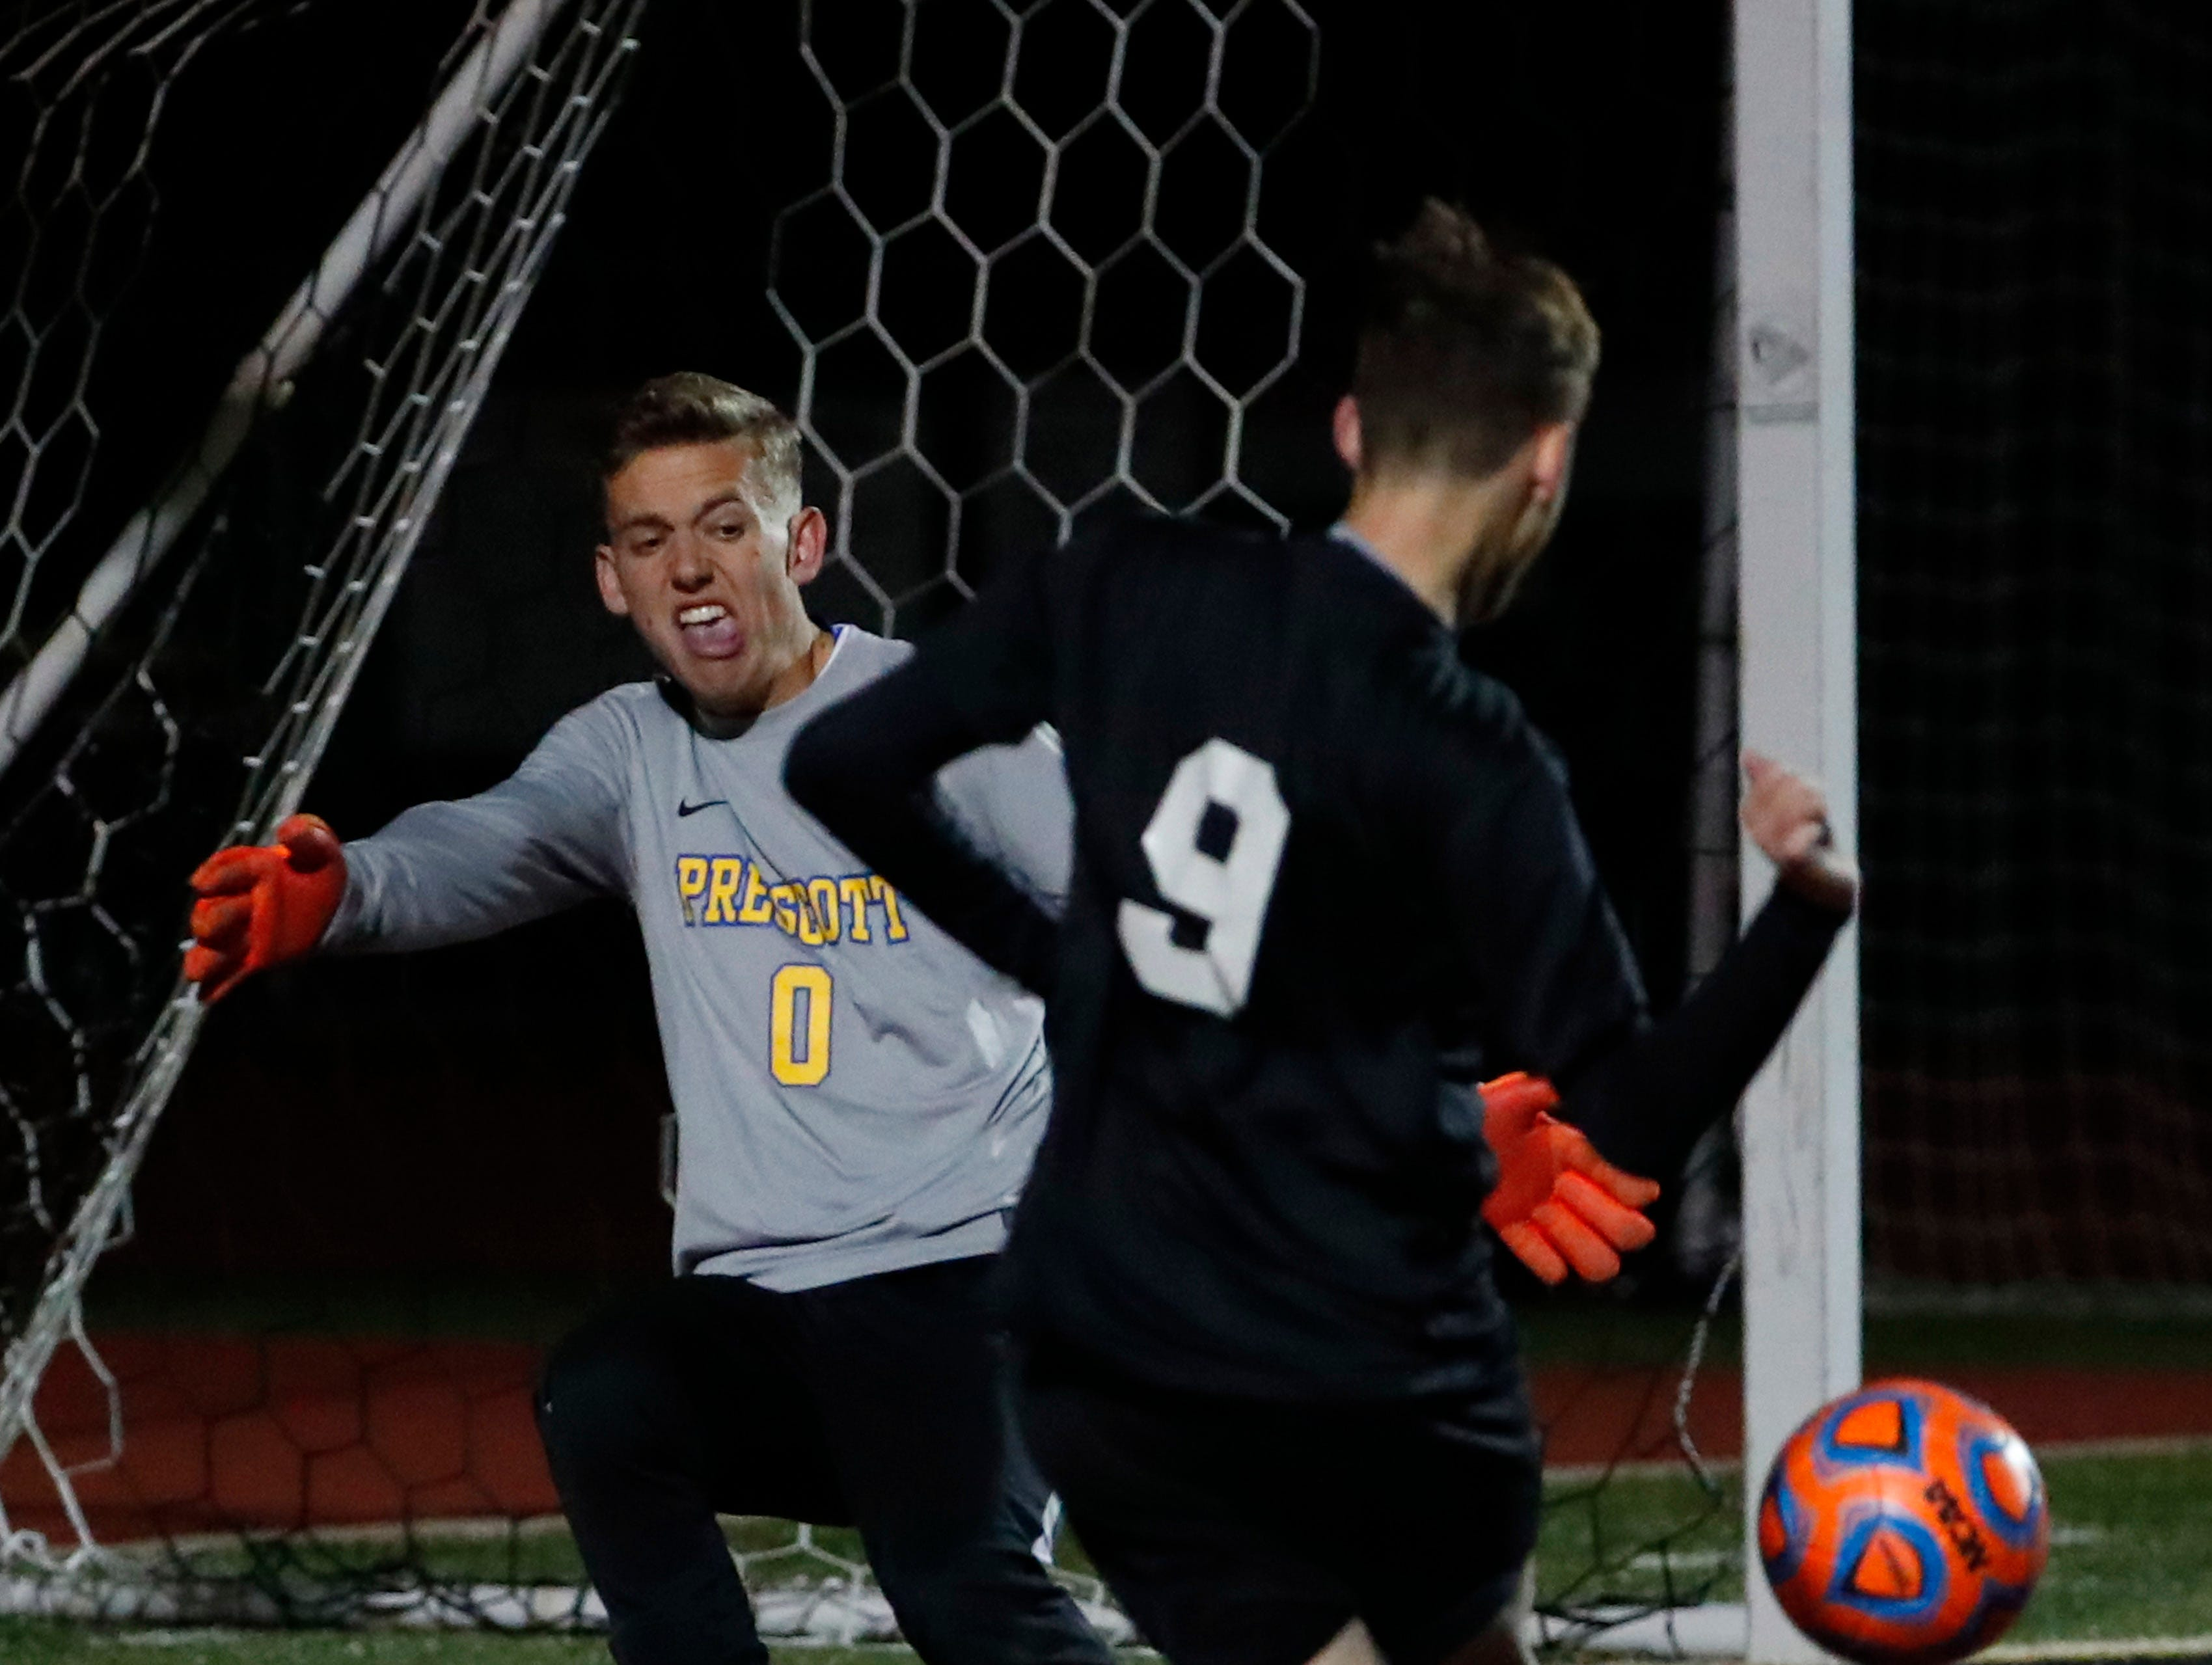 Salpointe's Francisco Manzo (9) takes a shot against Prescott goal keeper Ryan Peeples during the Boys 4A State Championship soccer game in Gilbert Feb. 19, 2019.The shot went high.